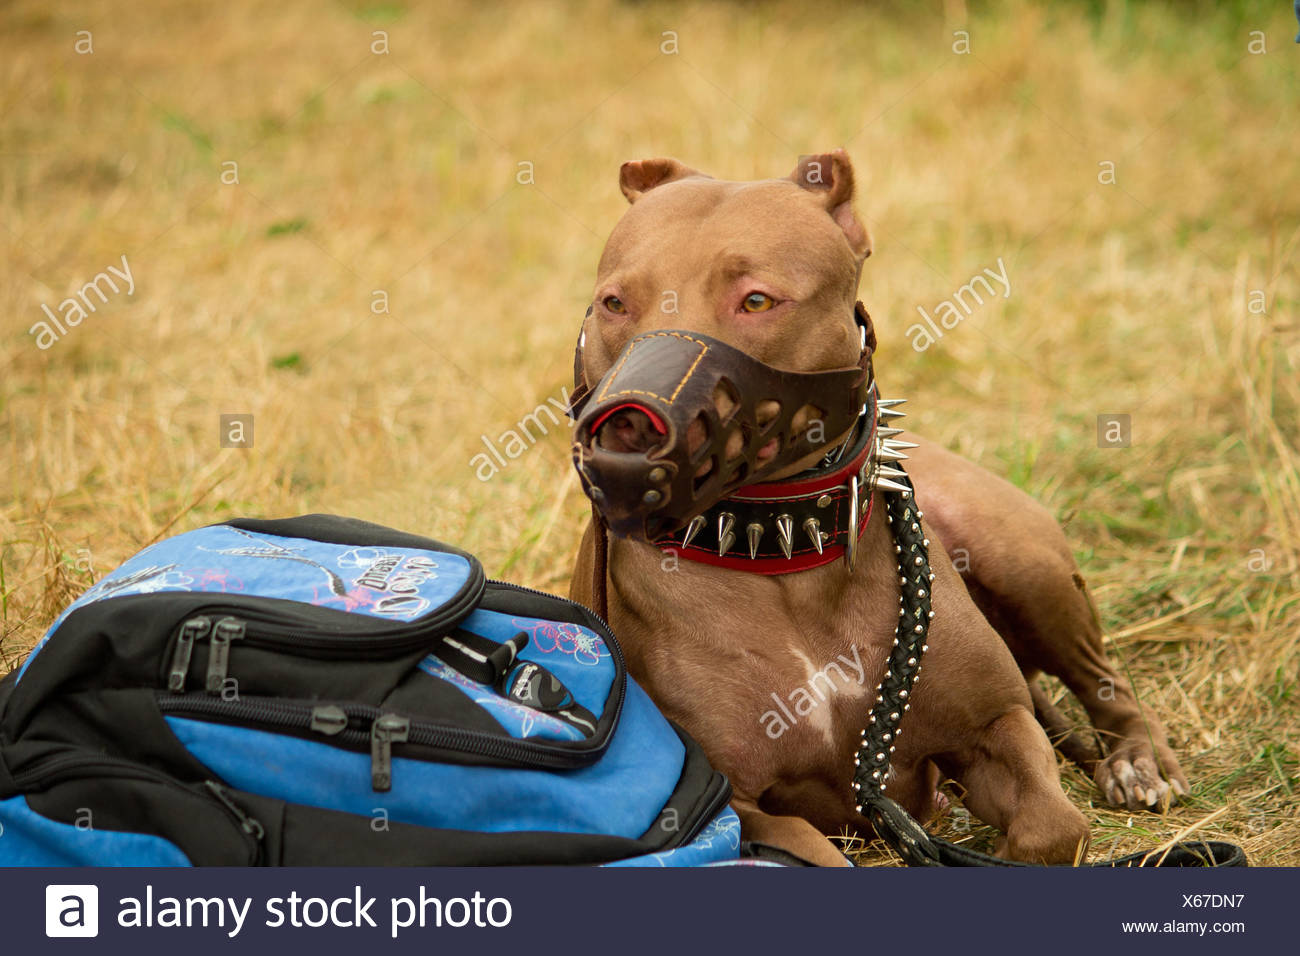 Large pedigreed dog guarding the things of the own - Stock Image